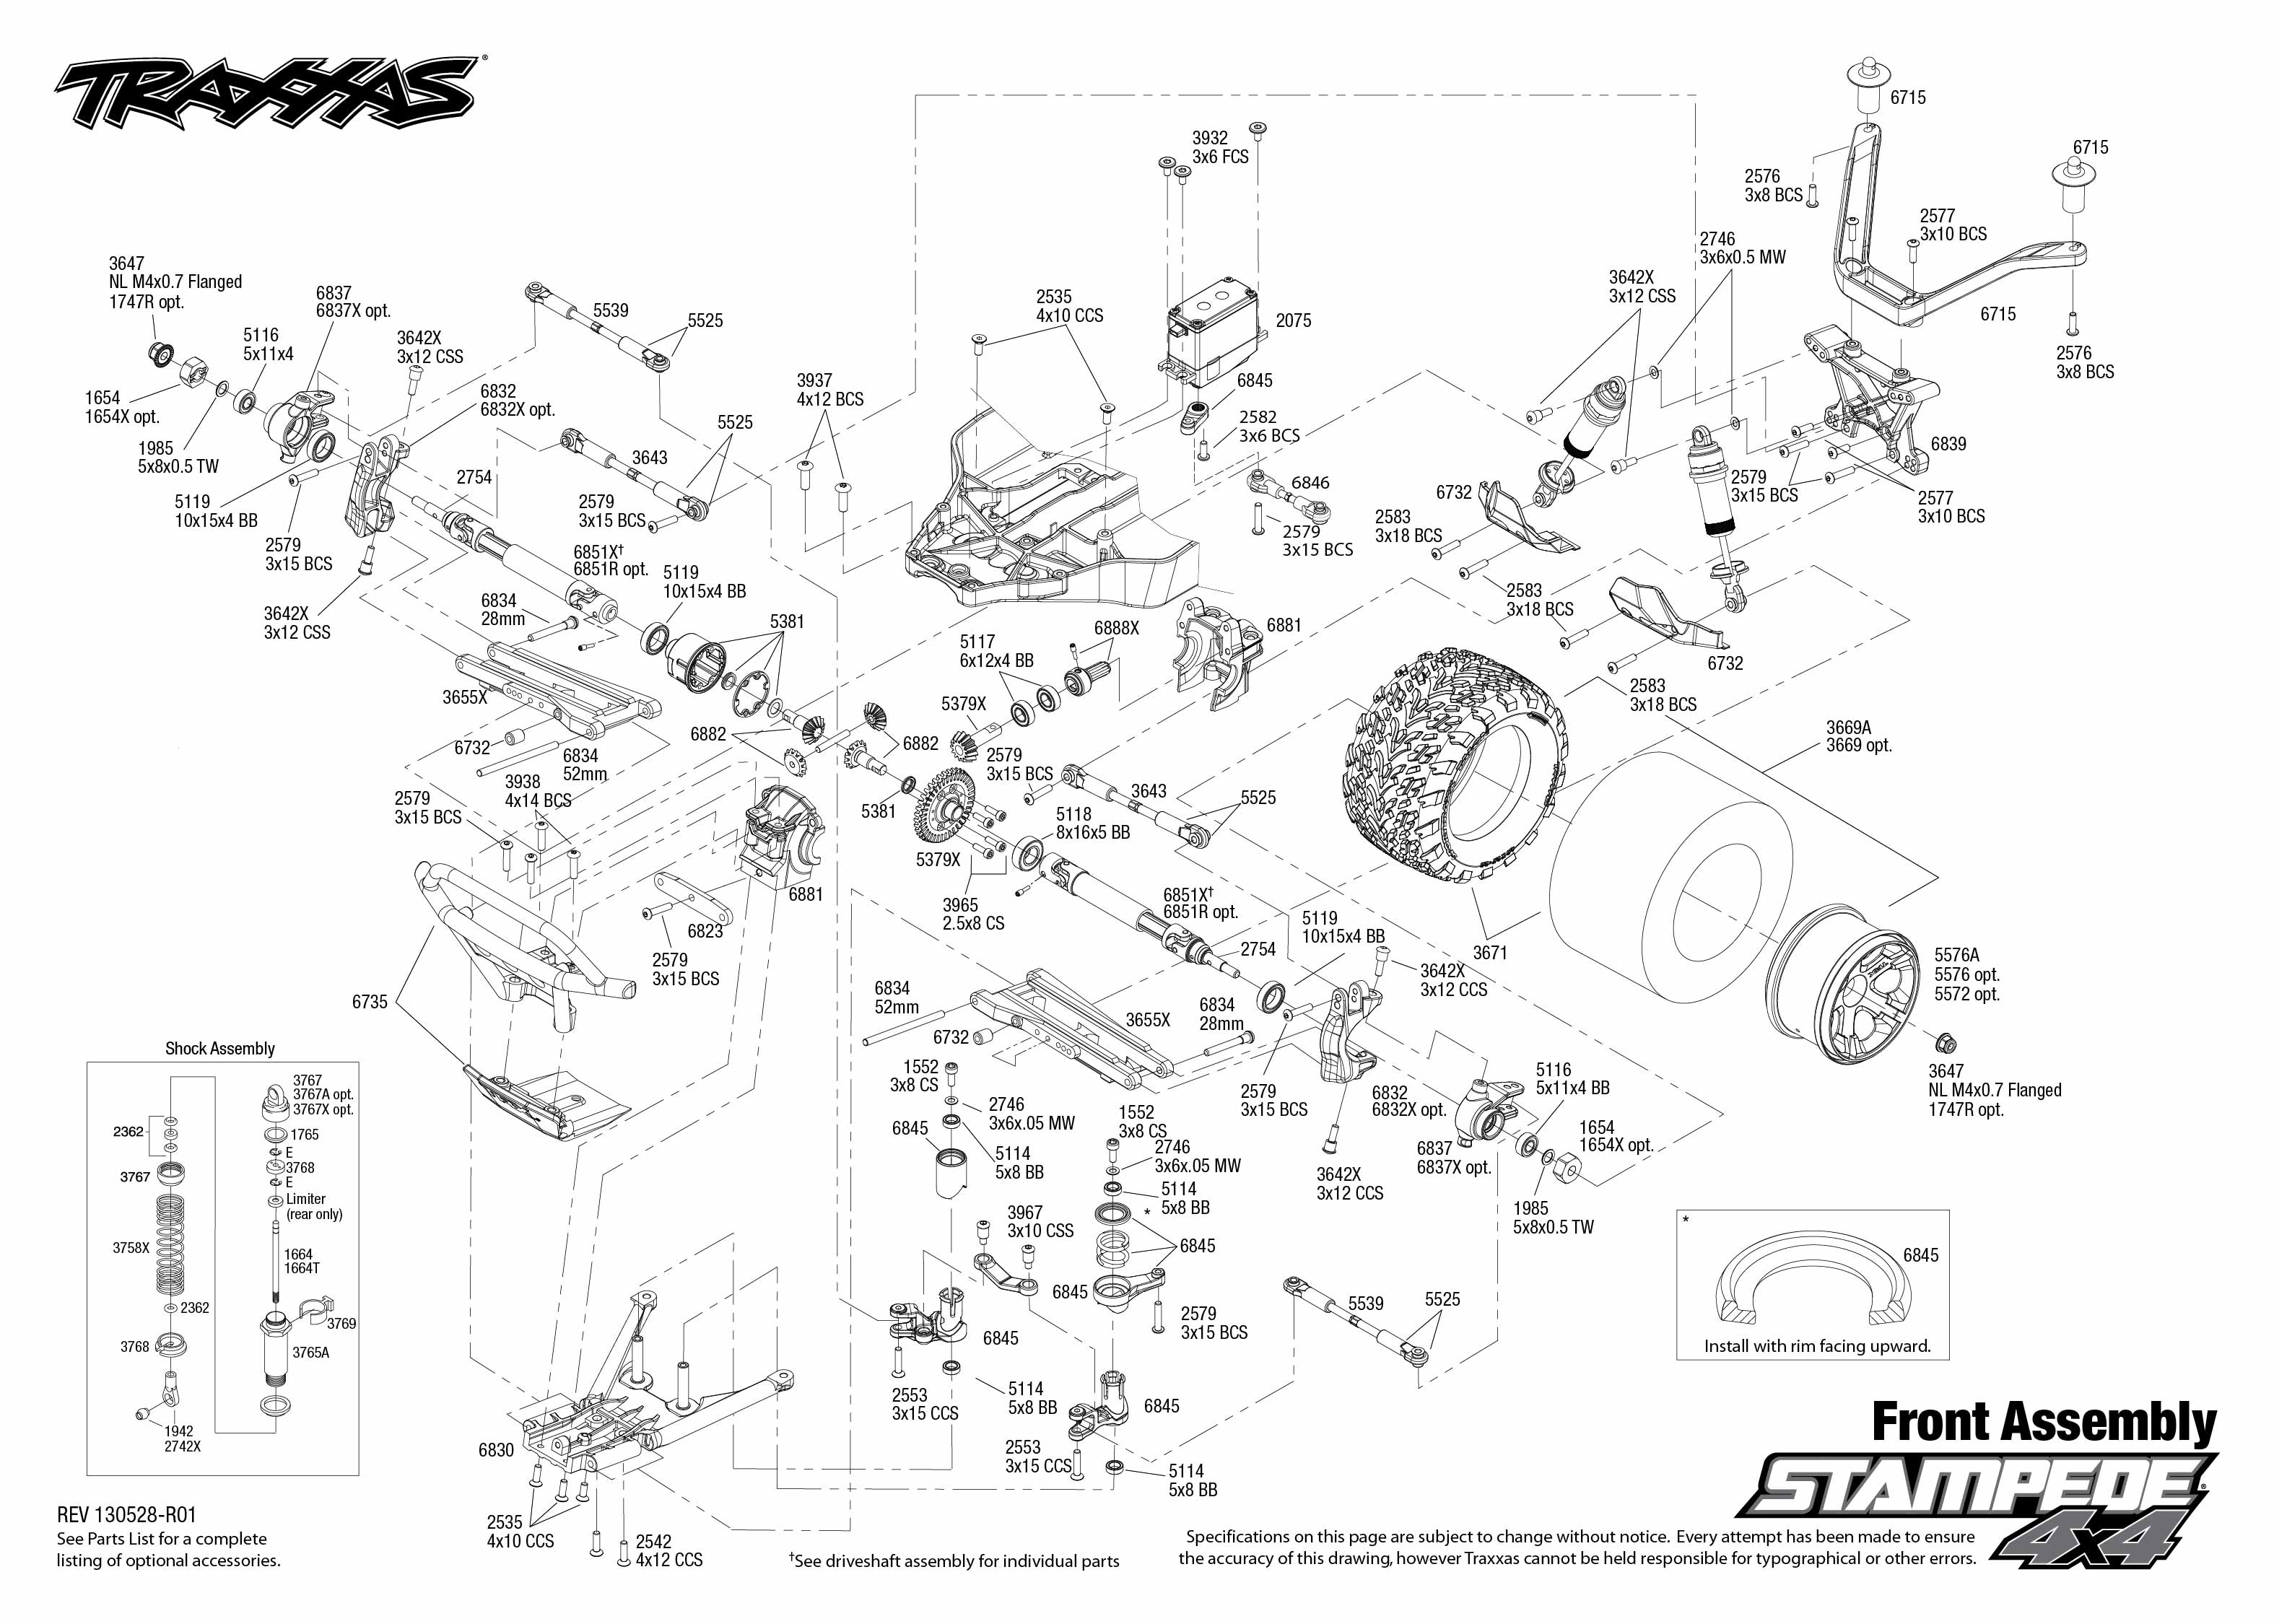 Traxxas Stampede Parts Diagram 30 Wiring Images Vxl Monster Jam Replicas 3602 6708l 4x4 Tqi Explodedviews 130528 6708 Front Assembly 0 1 10 Scale 4wd Brushless Truck